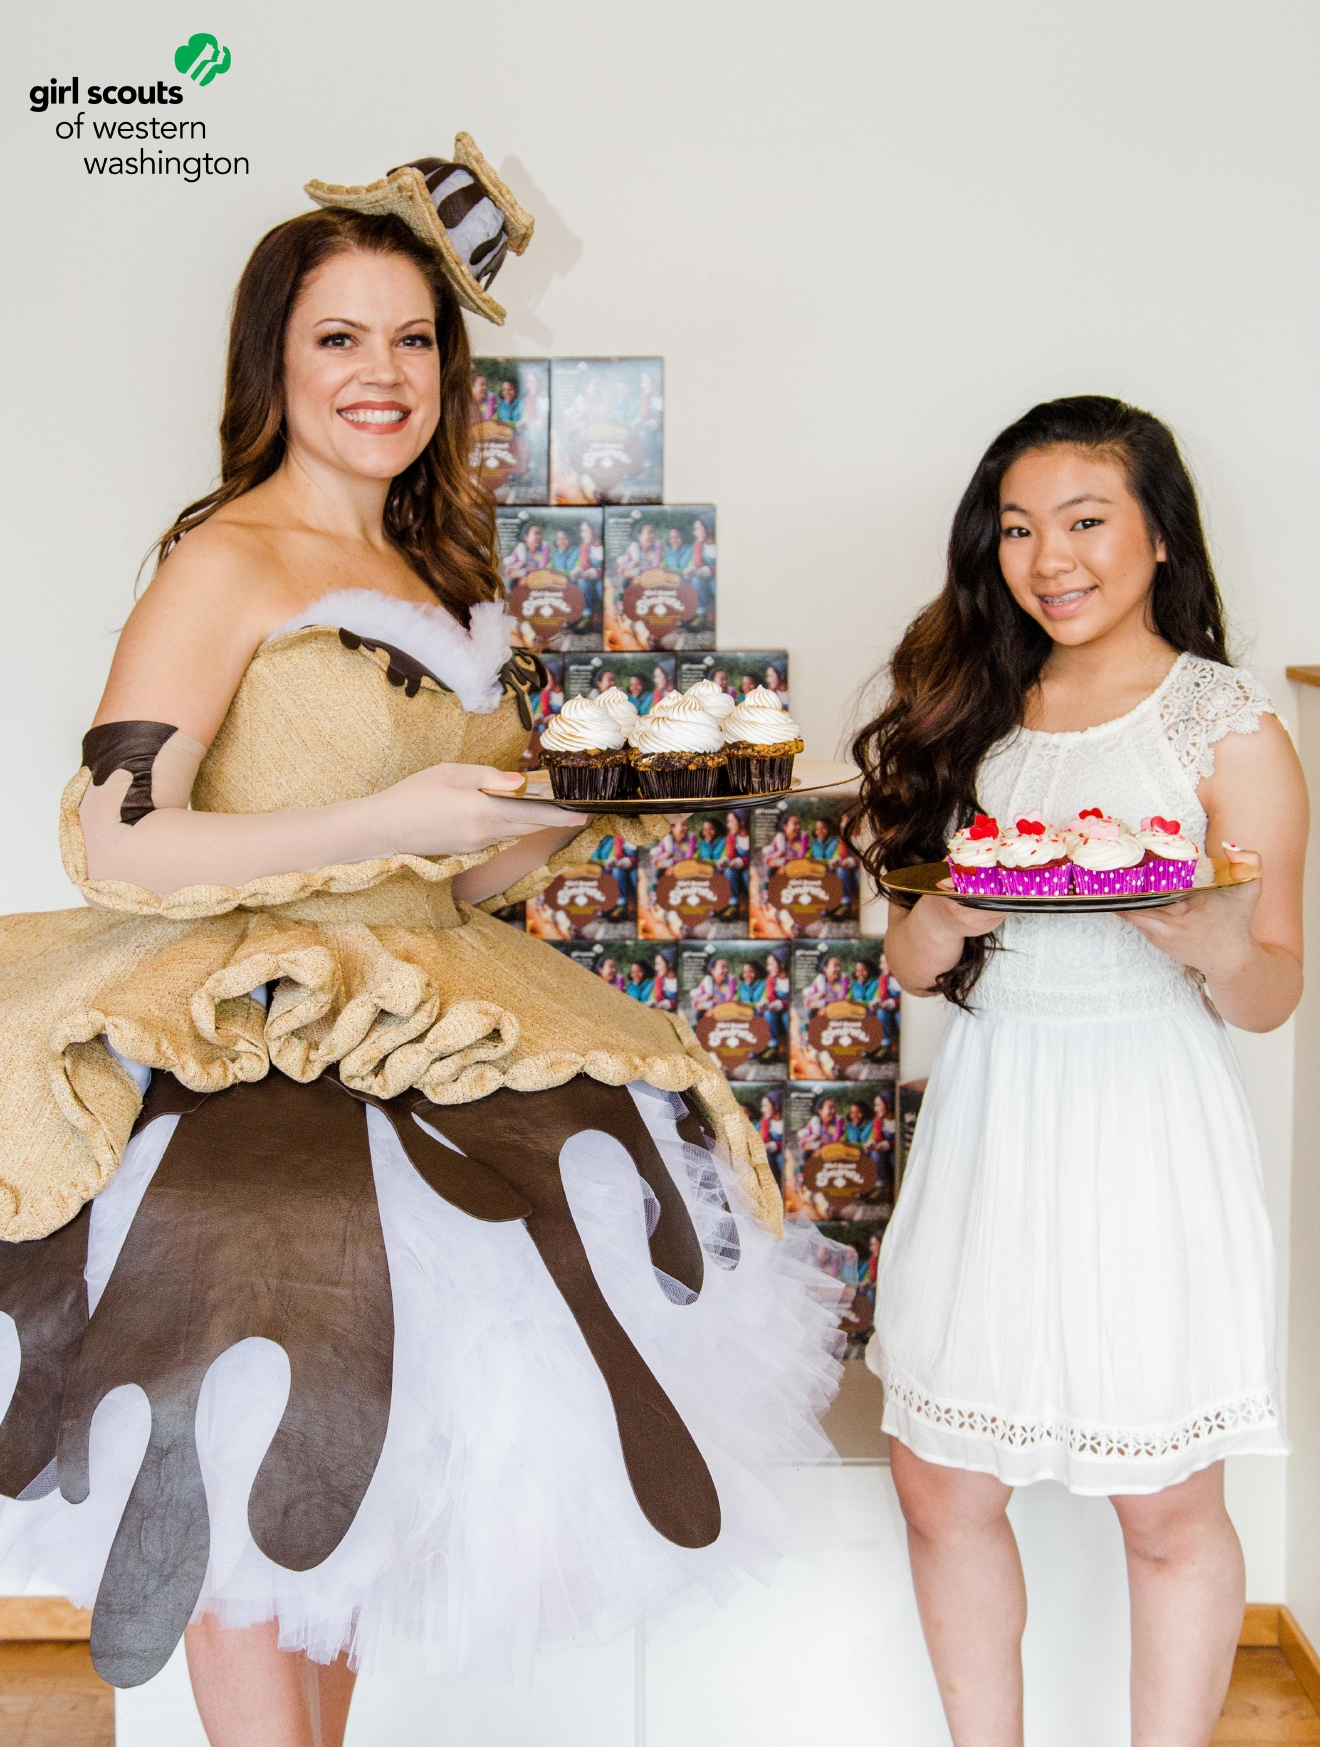 Trophy Cupcakes entrepreneur and Girl Scout alumna, Jennifer Shea models the dress along with Melody Nguyen, Girl Scout and Cupcake Wars/Chopped Junior contestant.  This duo was paired due to their love of cupcakes and because Nguyen hopes to achieve the same level success as Shea in the culinary arena.  Photo Credit: David Jaewon Oh